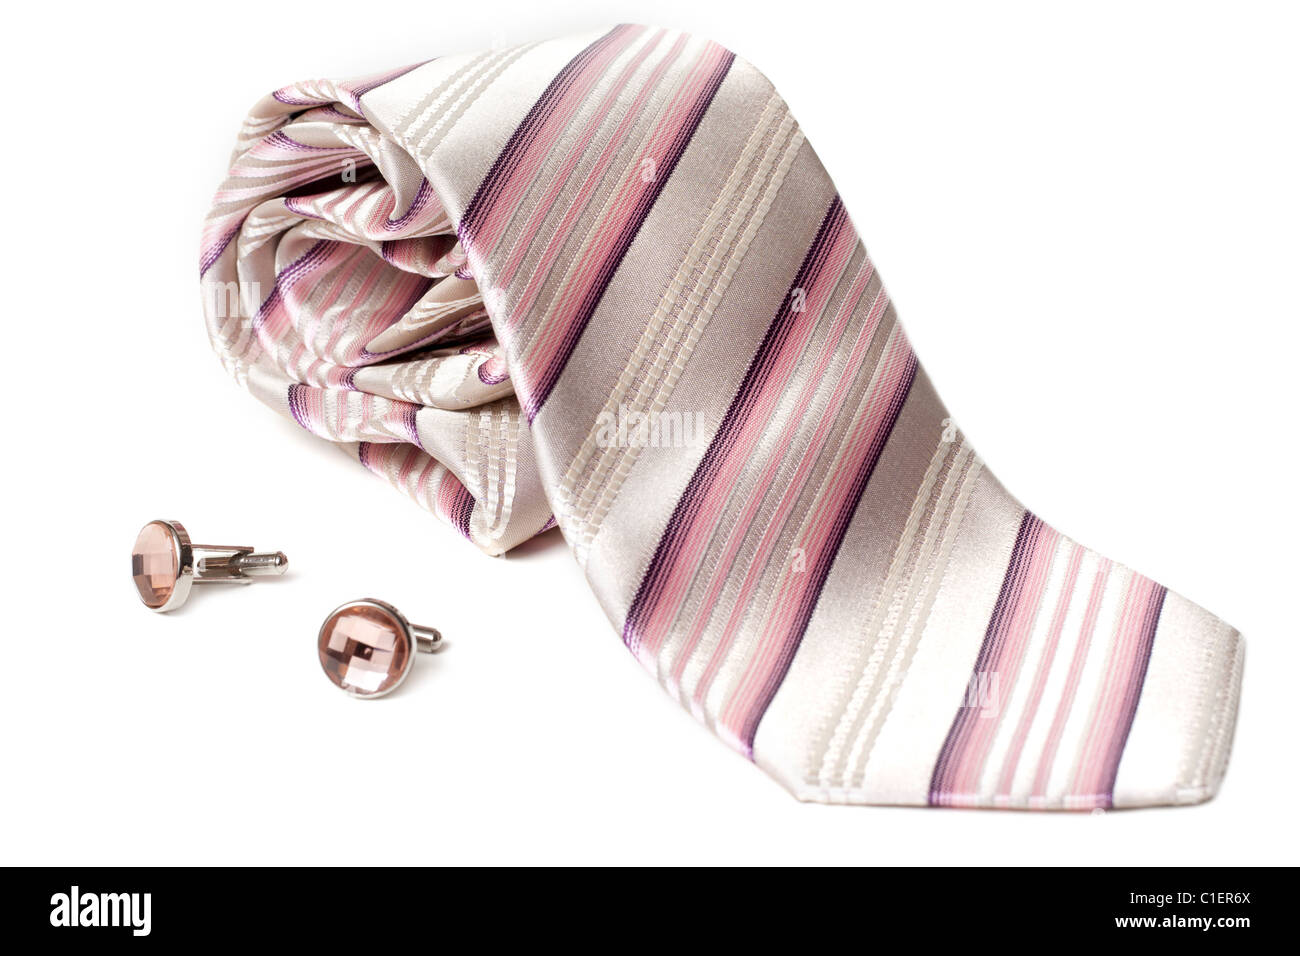 Rose striped tie and cuff links with stone insulated on white background Stock Photo